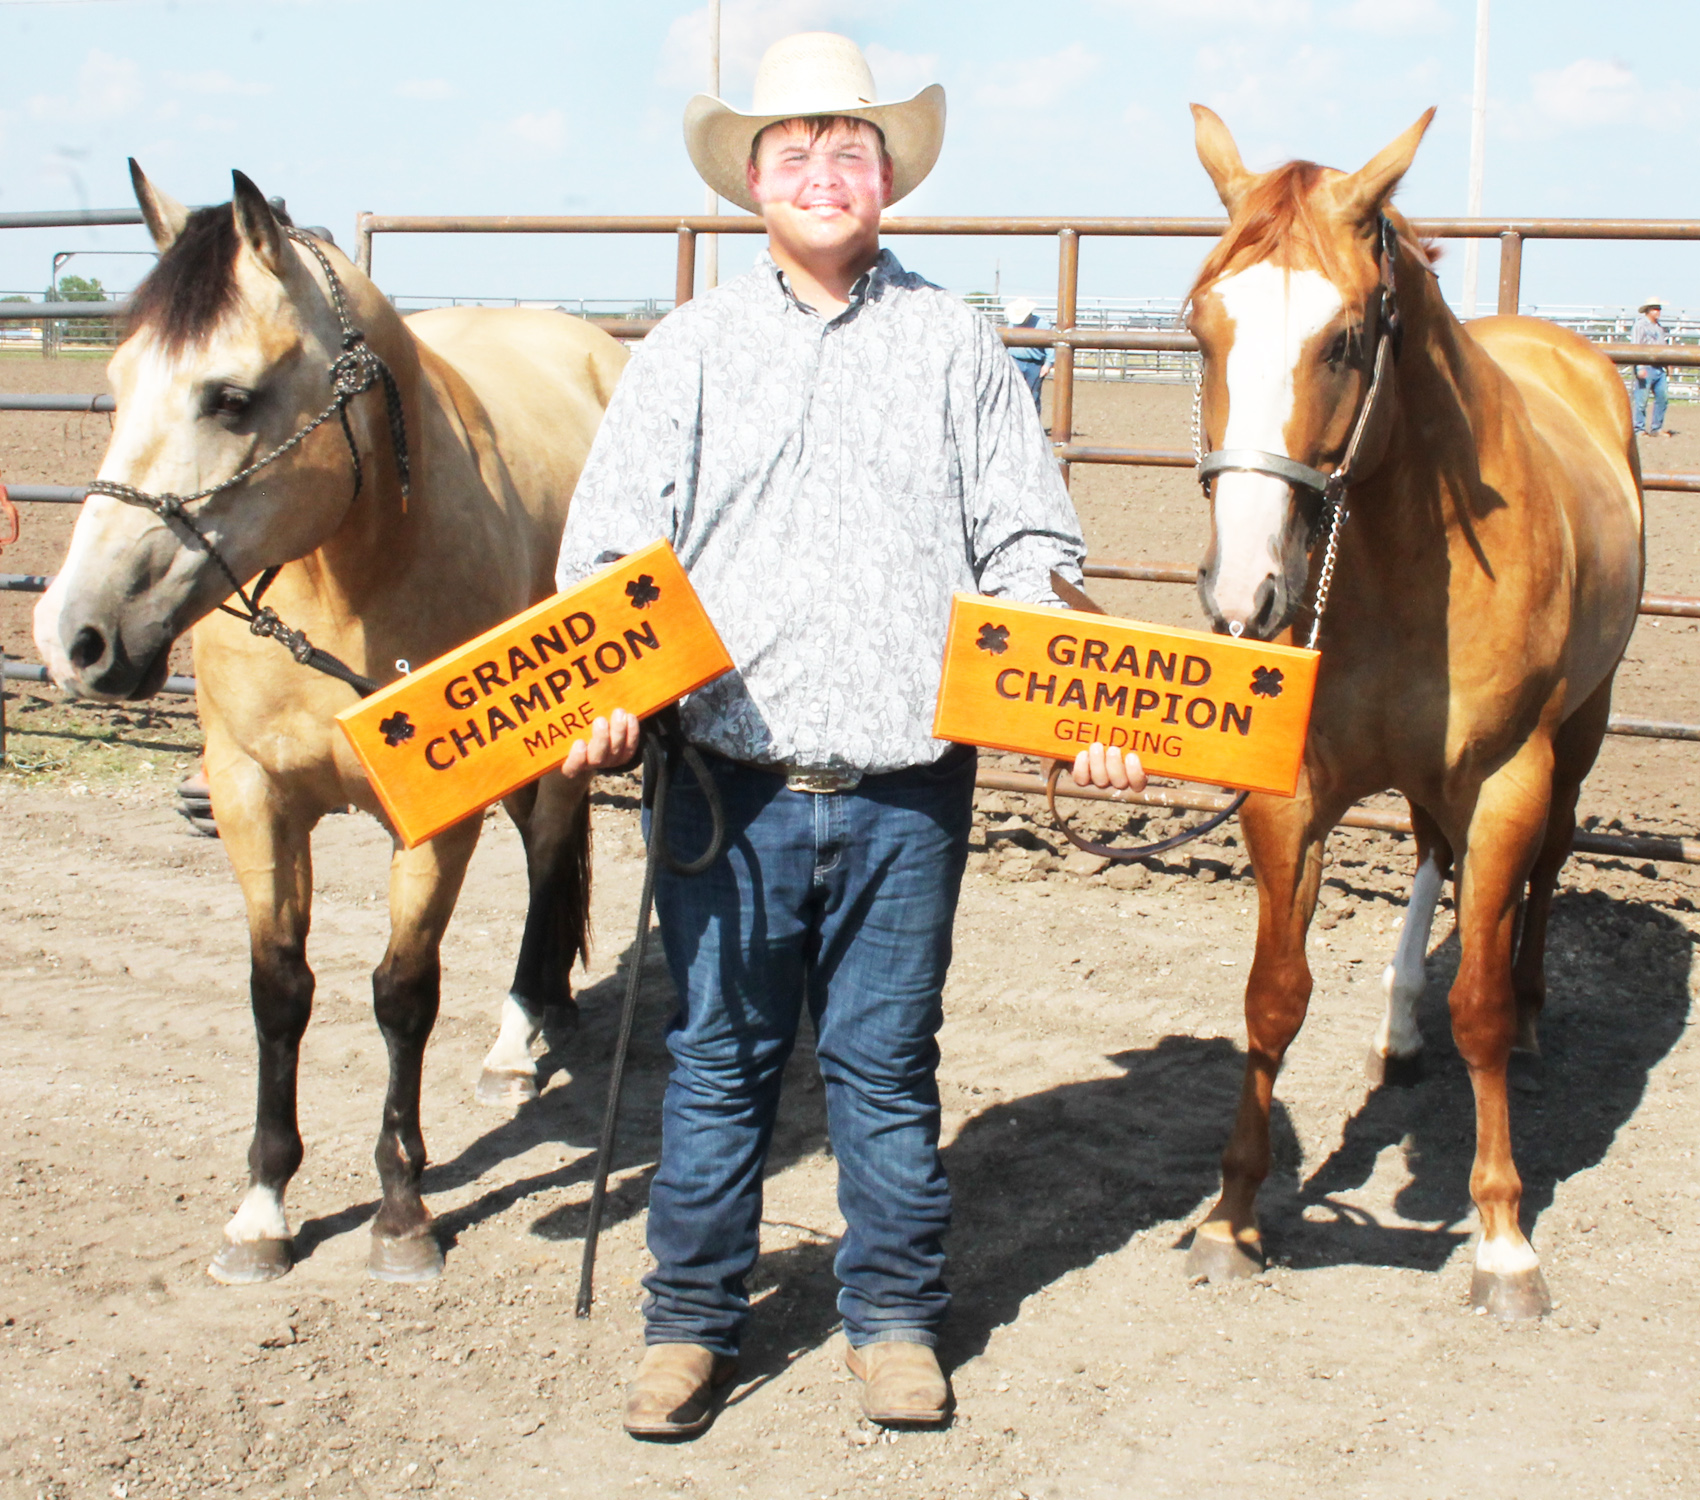 Dakota Abel of the Soldier Boosters showed the top two horses in this year's horse show, the grand champion gelding, at right, and the grand champion mare.